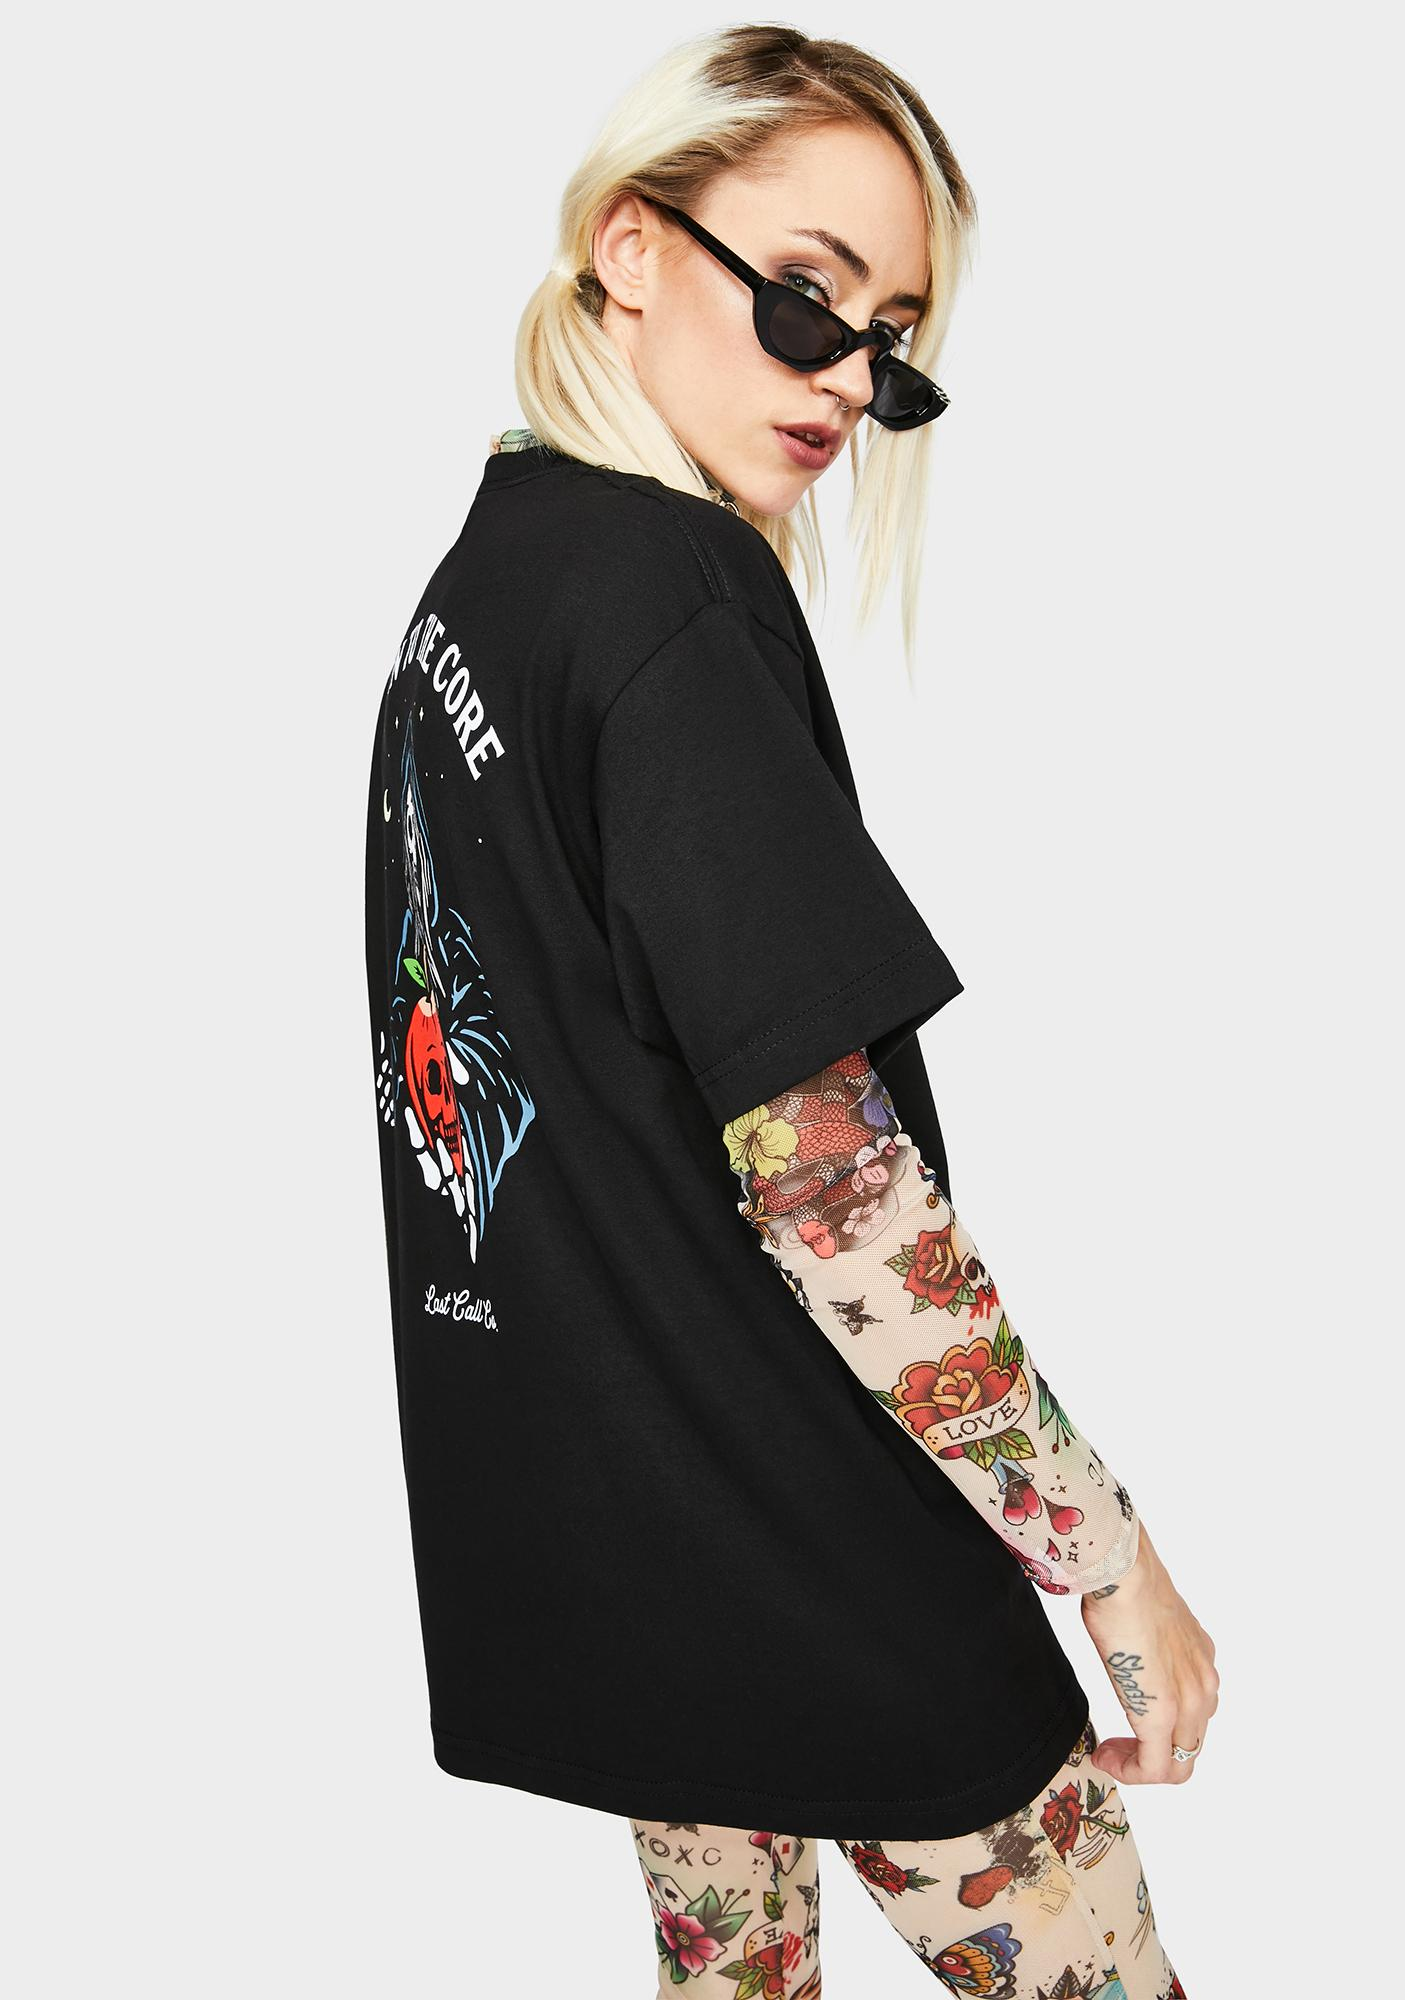 Last Call Co. Rotten Graphic Tee